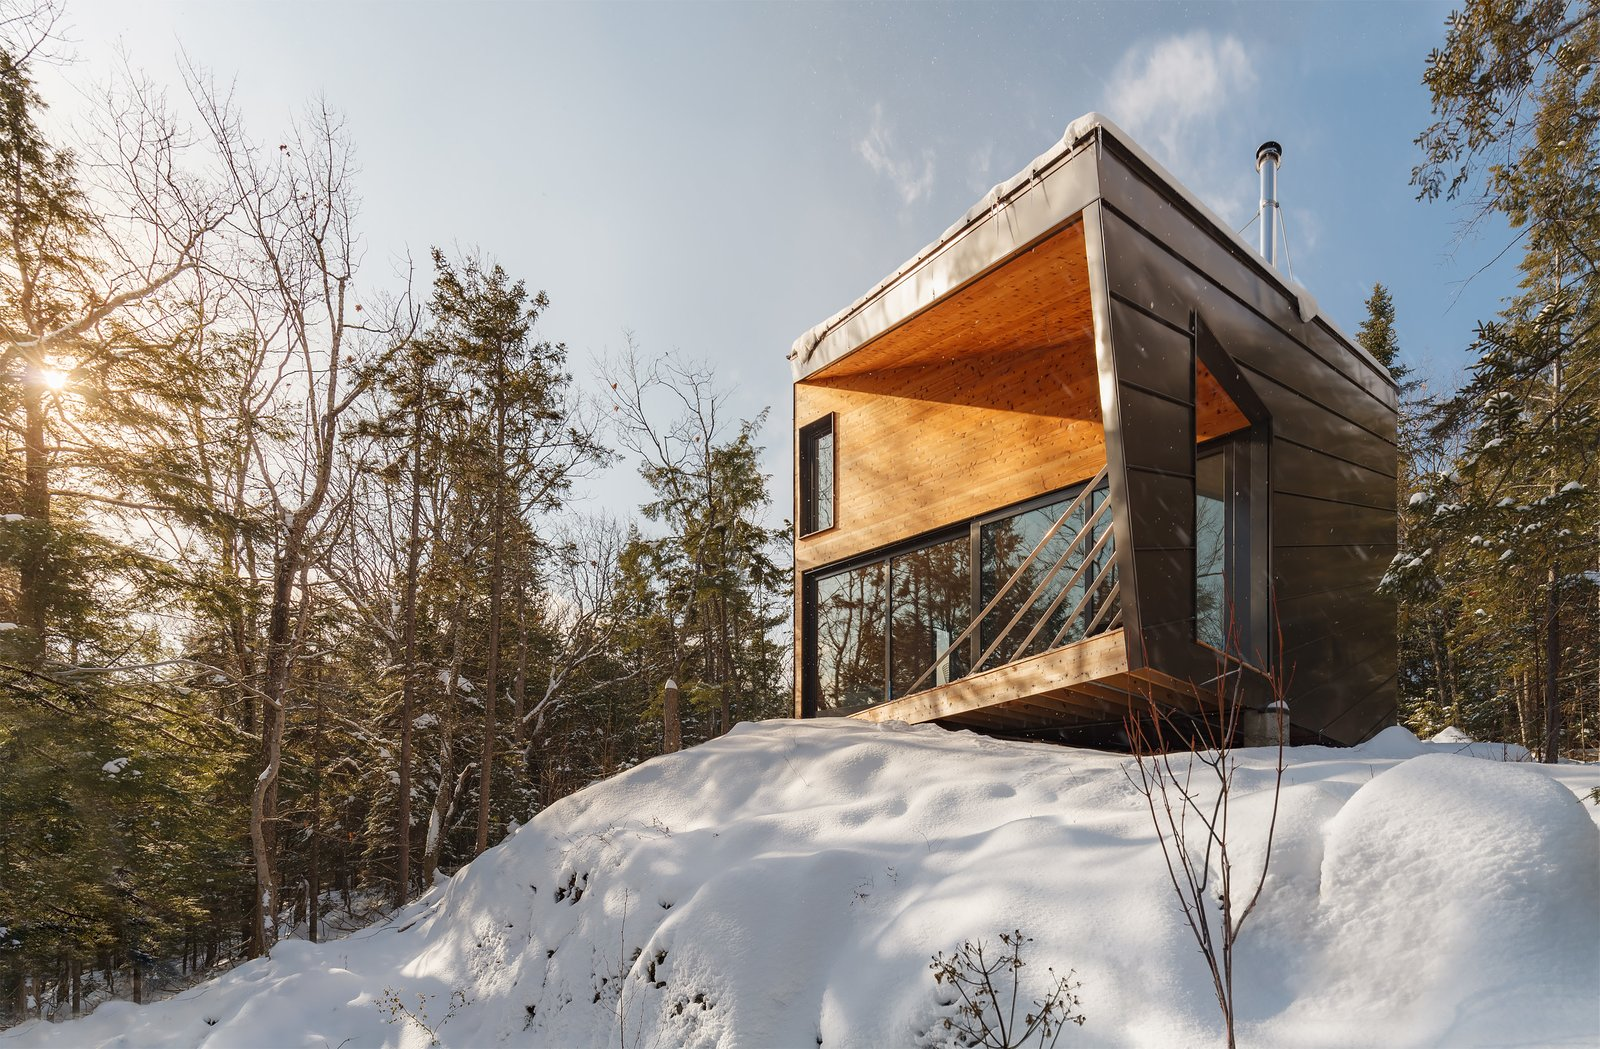 """Exterior, Prefab Building Type, Metal Siding Material, Wood Siding Material, Cabin Building Type, House Building Type, Metal Roof Material, and Shed RoofLine """"The 900-square-foot cabin perches on one piece of granite, projecting precariously over a steep drop-off to afford dramatic eastern views across the valley below,"""" says Isamu Kanda, principal at I-Kanda."""